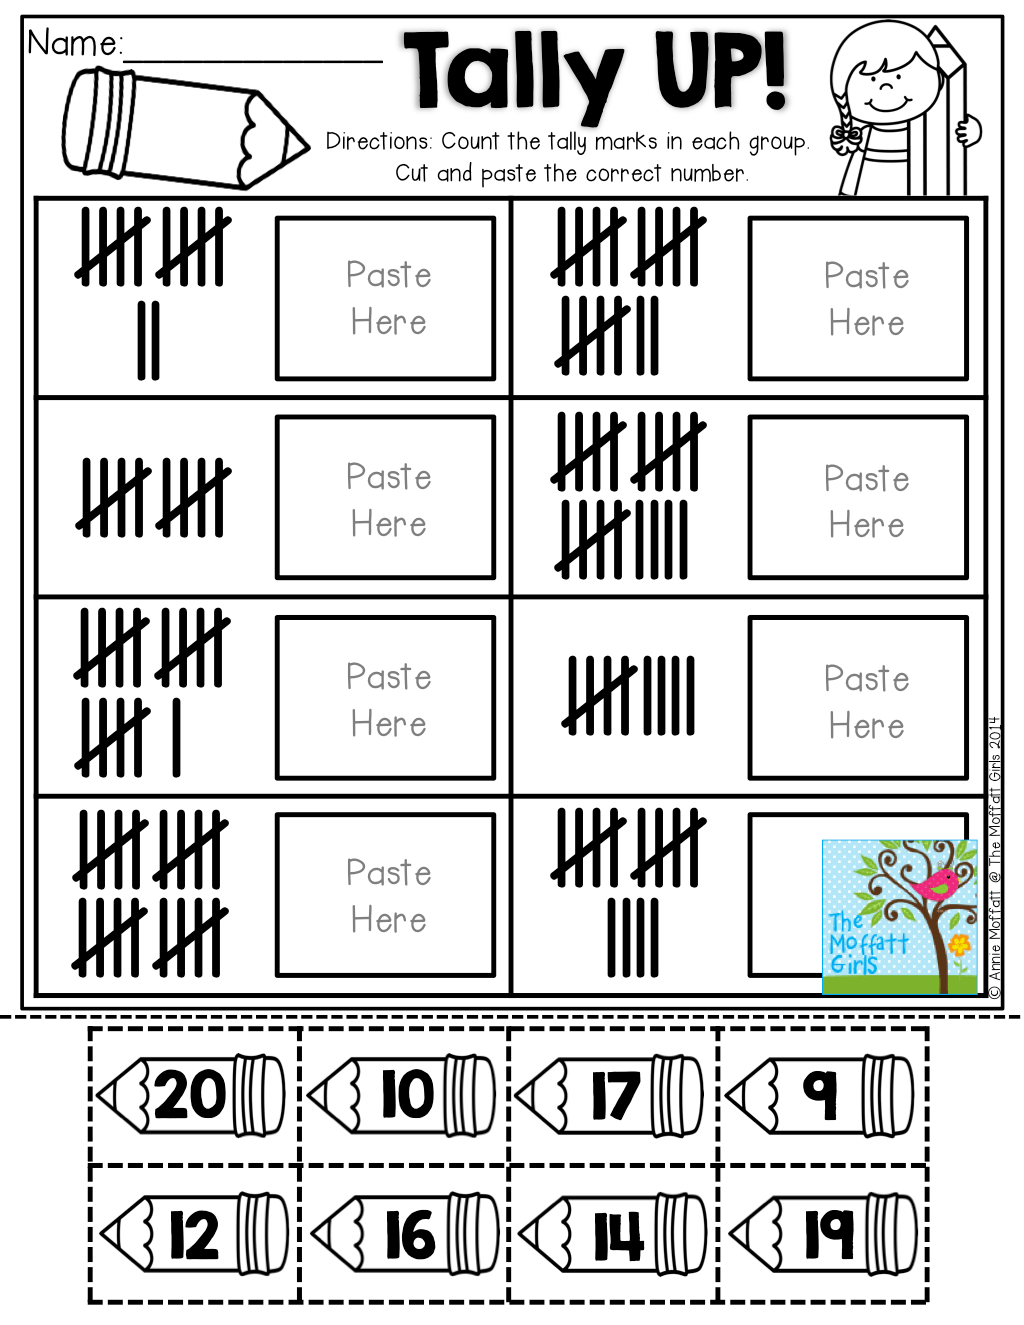 Tally Up Count Cut And Paste The Number That Matches The Tally Mark Tons Of Interactive